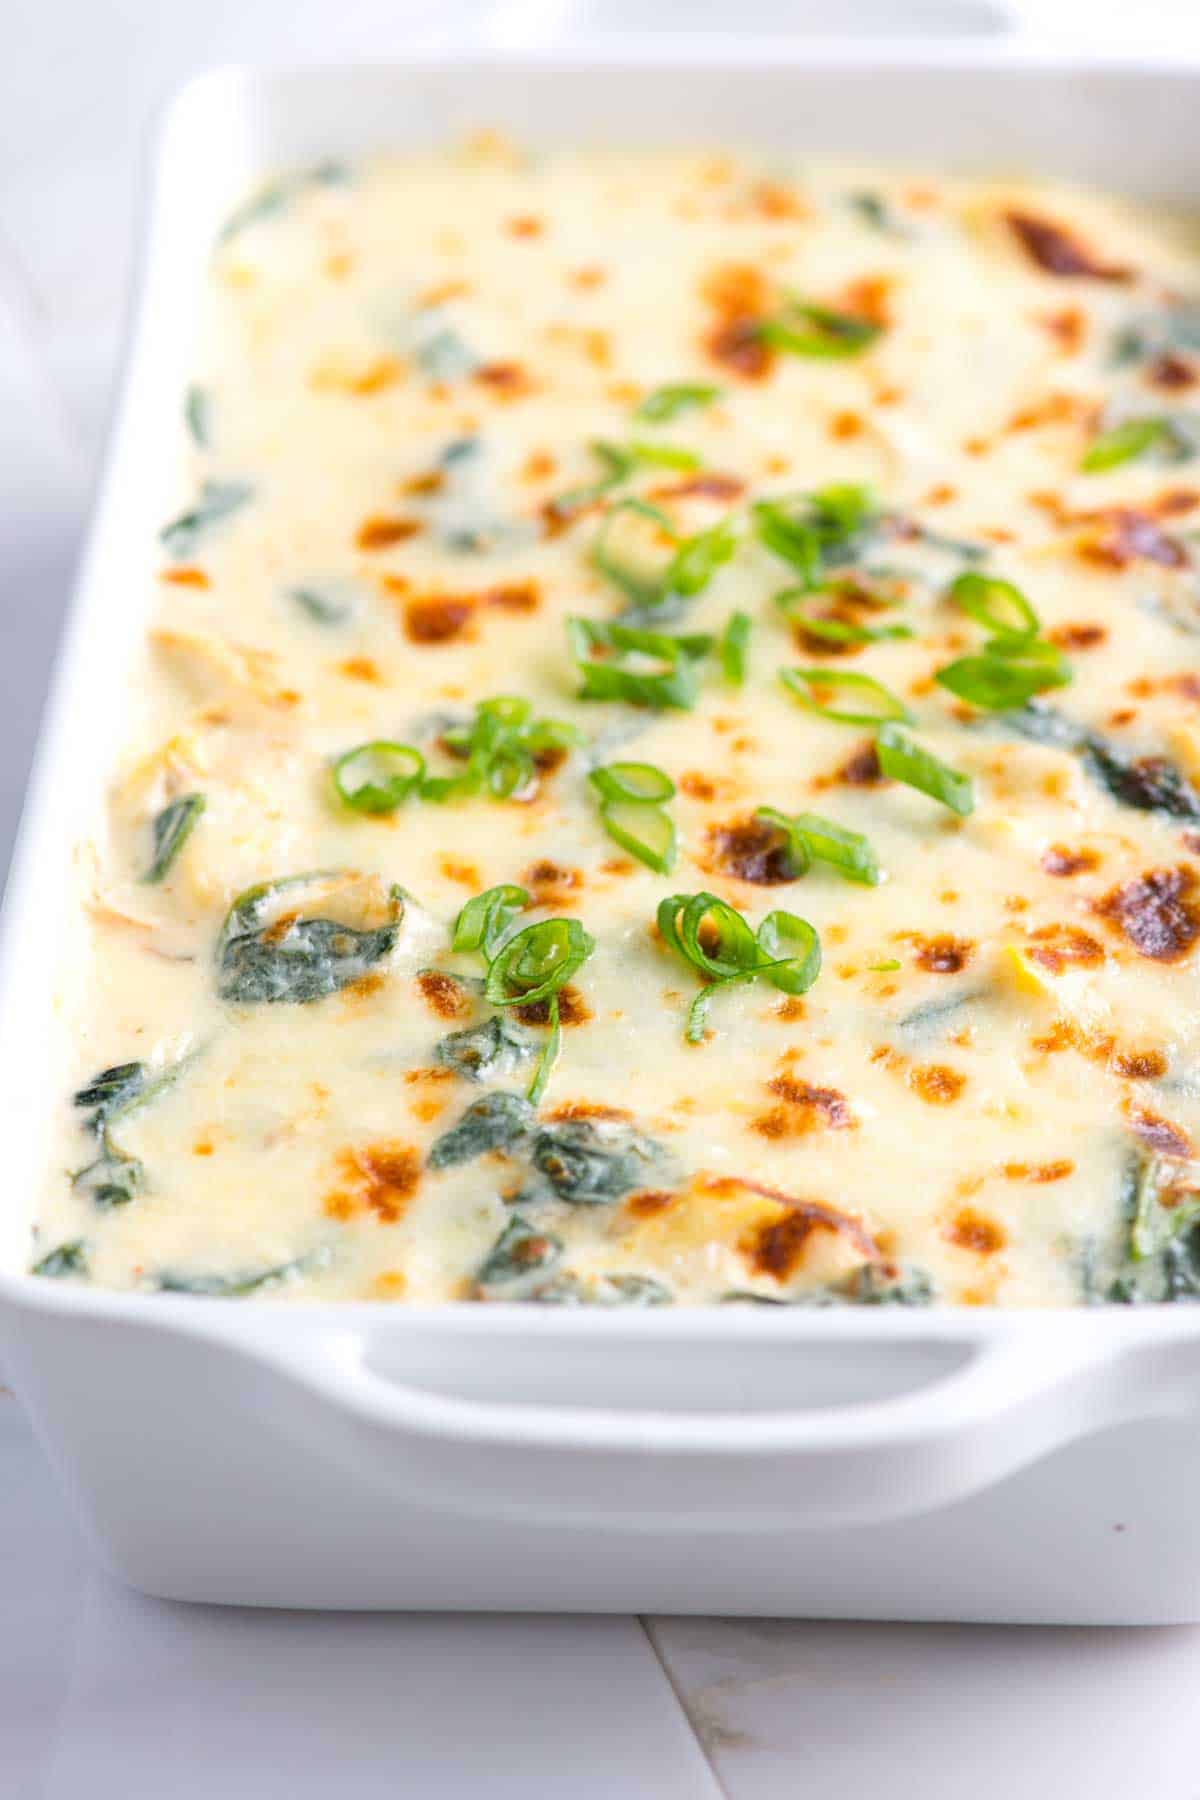 How to Make the Creamiest Spinach and Artichoke Dip